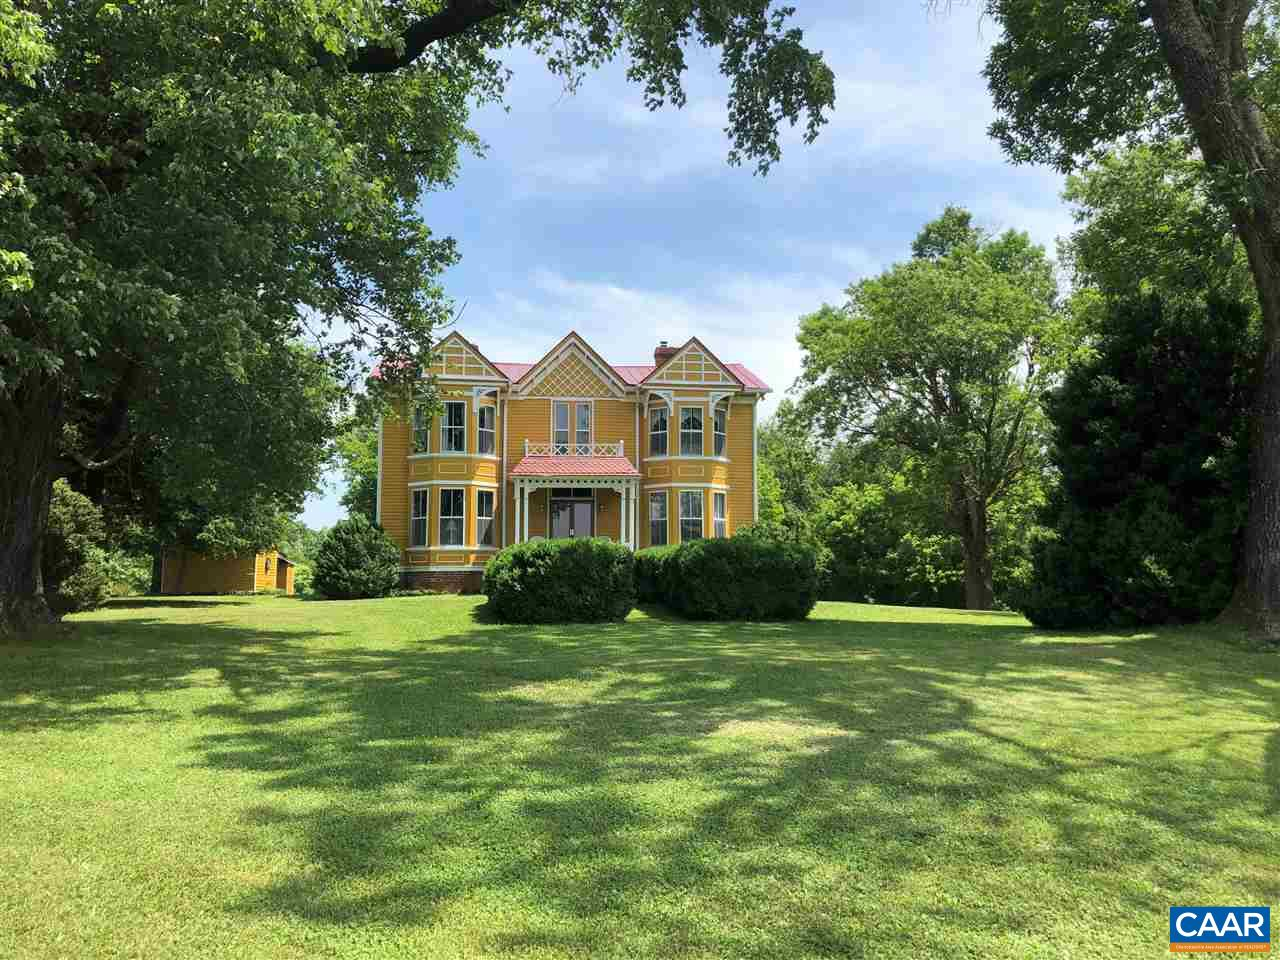 home for sale , MLS #586997, 4132 Jack Jouett Rd